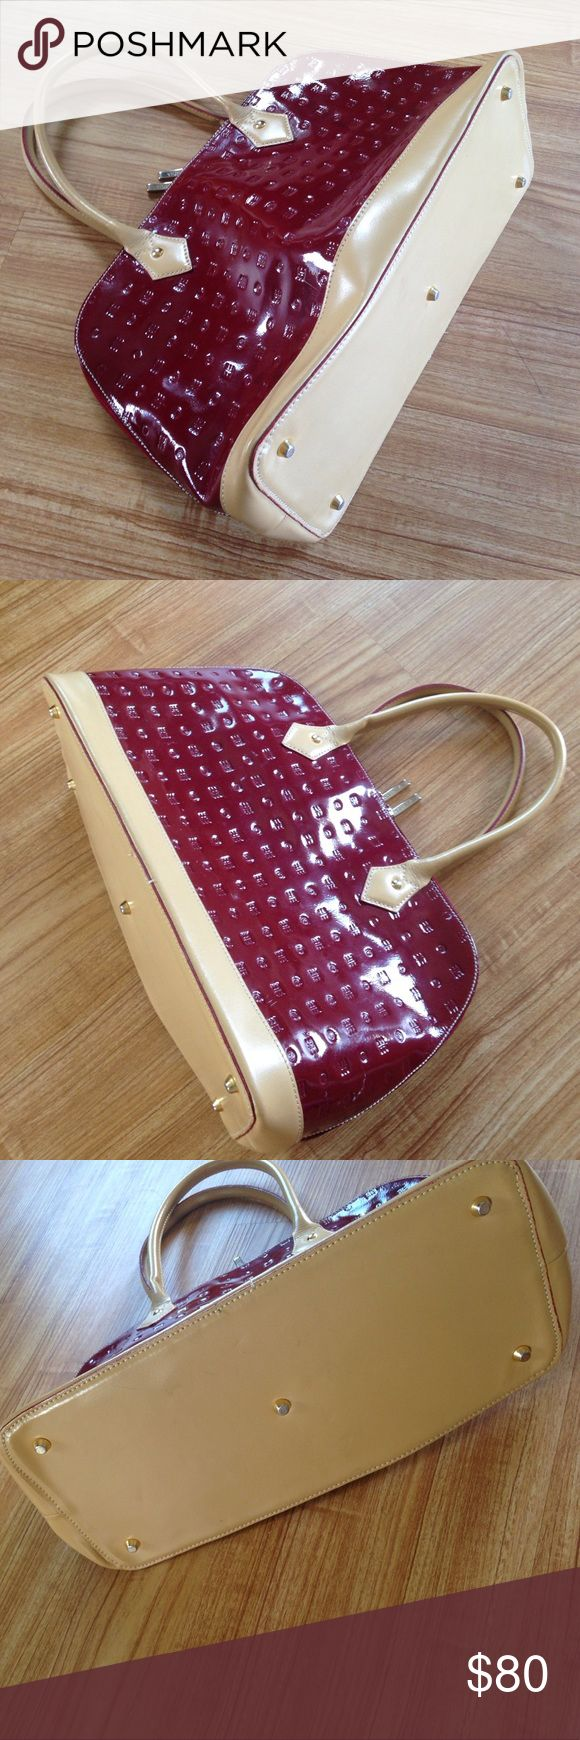 Sale...Arcadia purse Used in very good condition no damage. Color is more Burgundy then red arcadia Bags Satchels